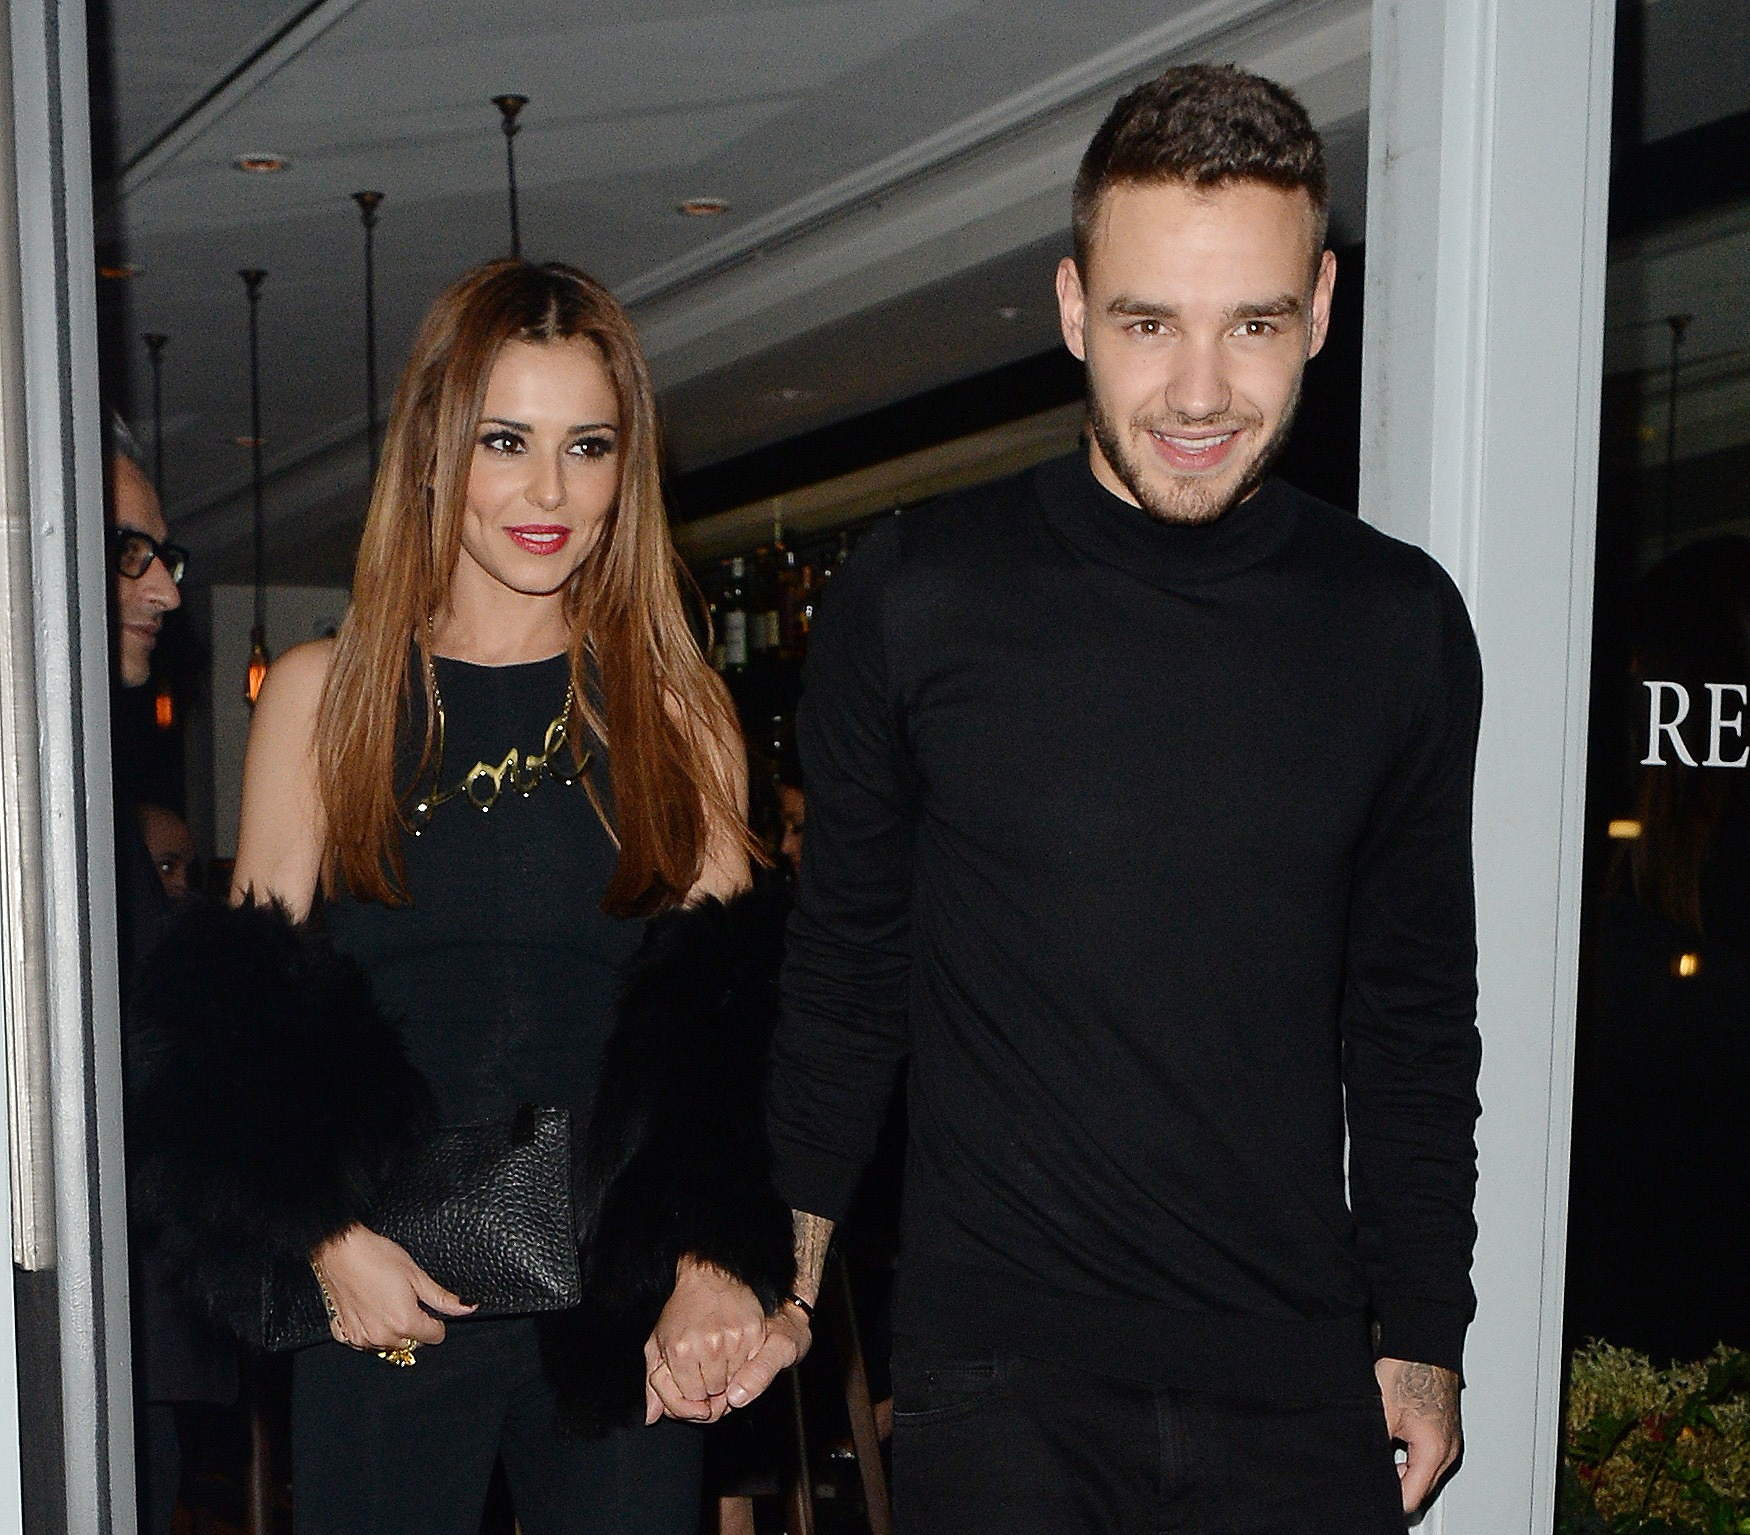 Liam Payne opens up about disagreements with Cheryl amid split rumours